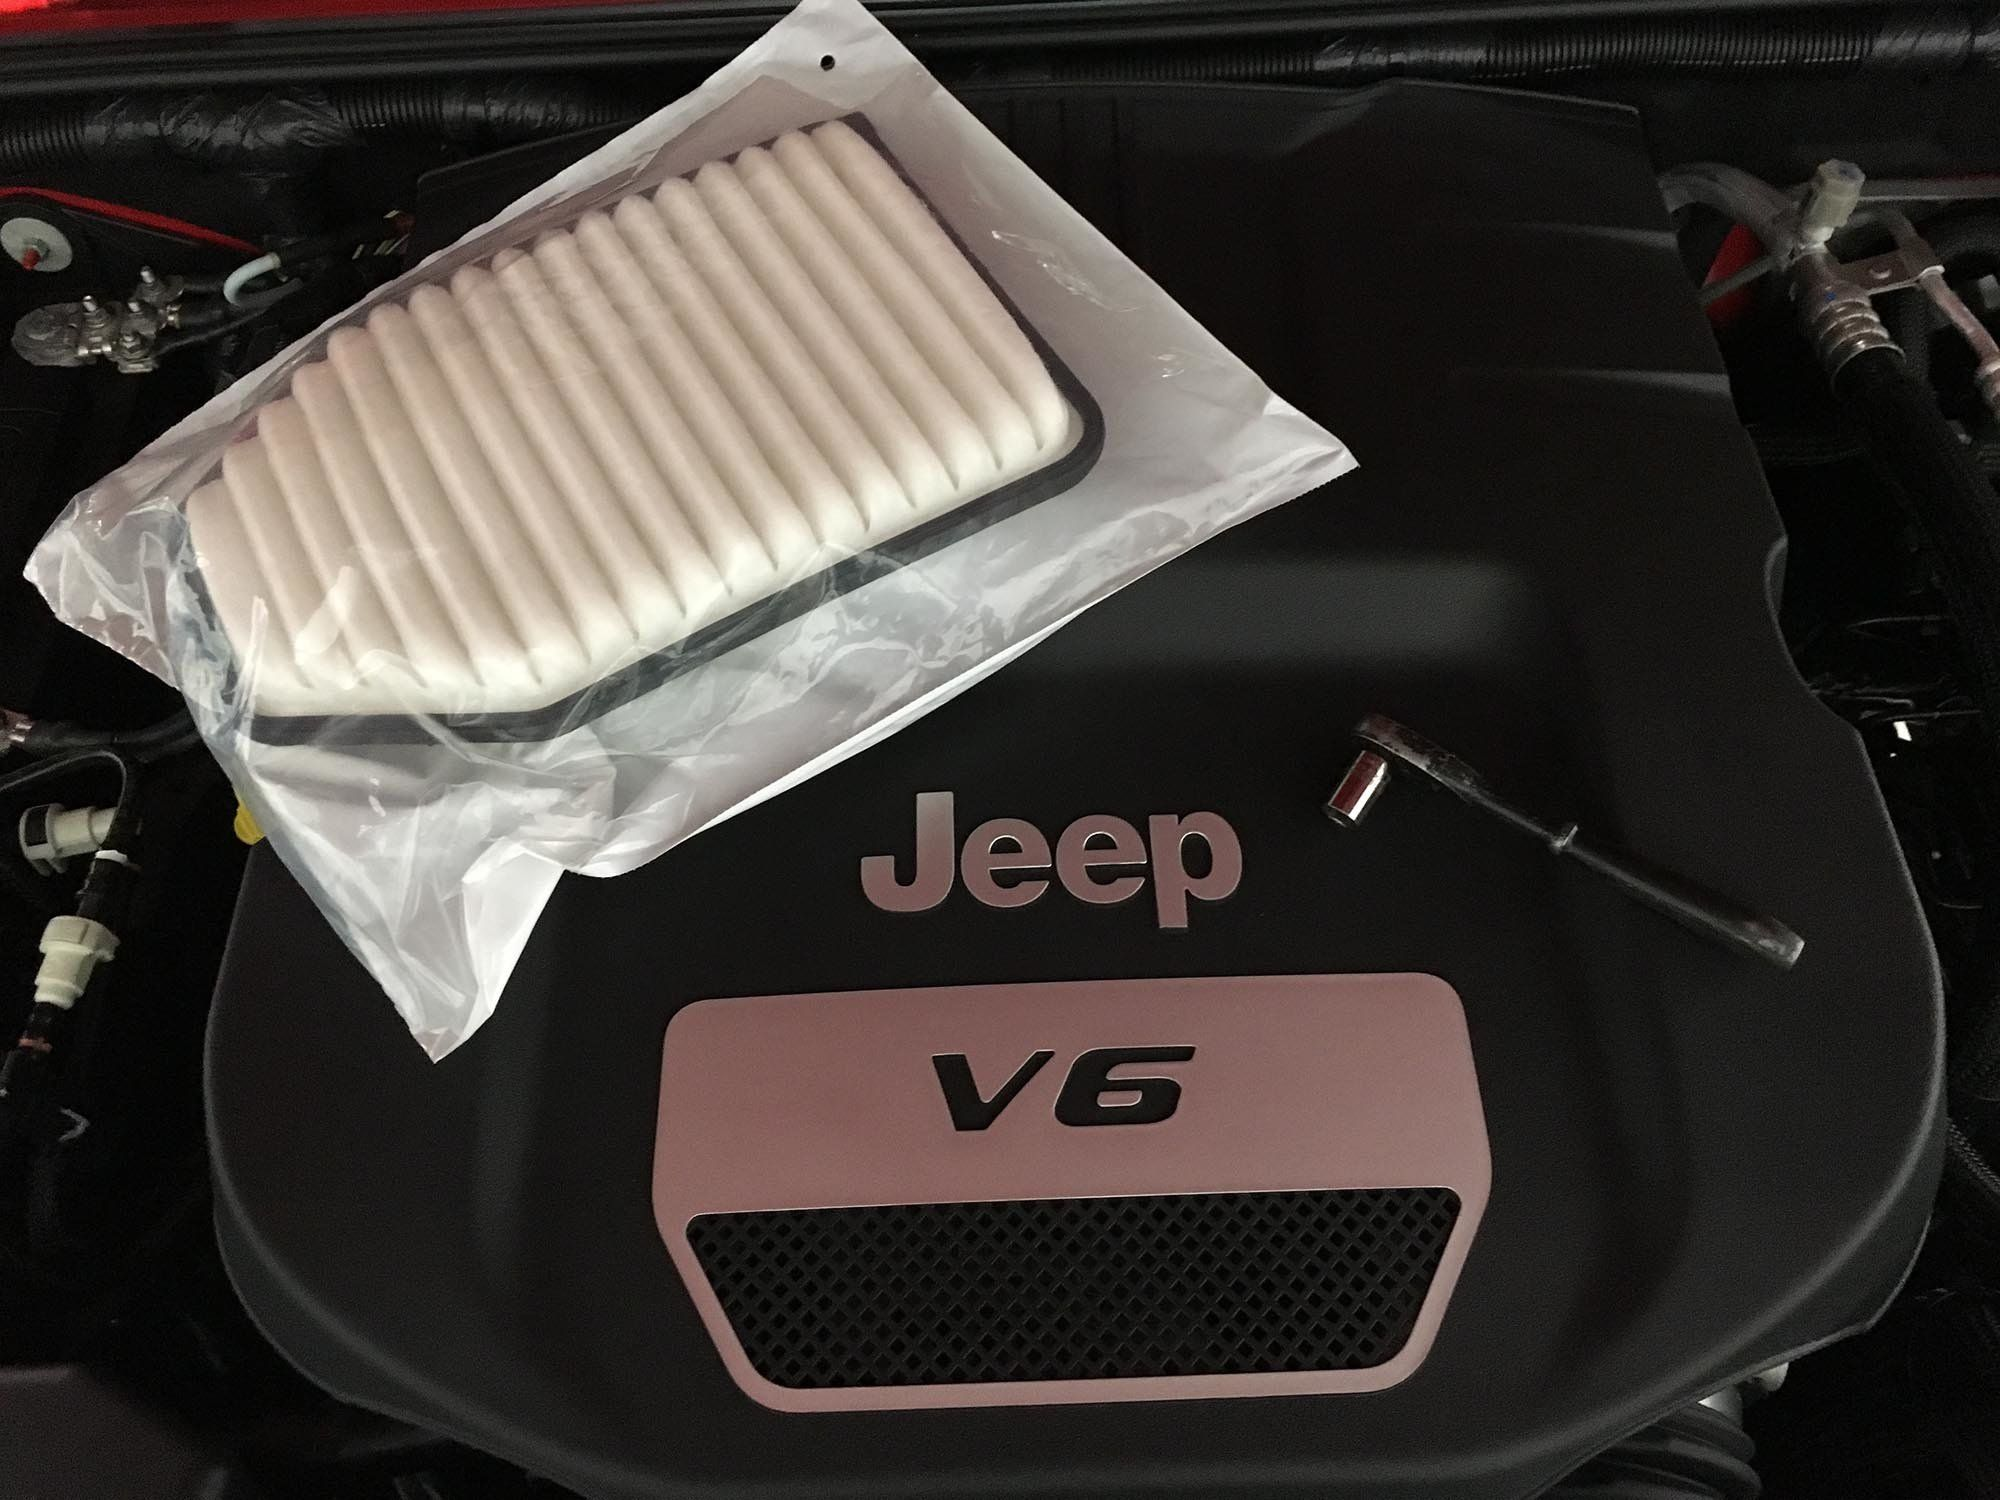 How To Replace A Jeep Jk Wrangler Air Filter Air Filter Jeep Wrangler Jk Jeep